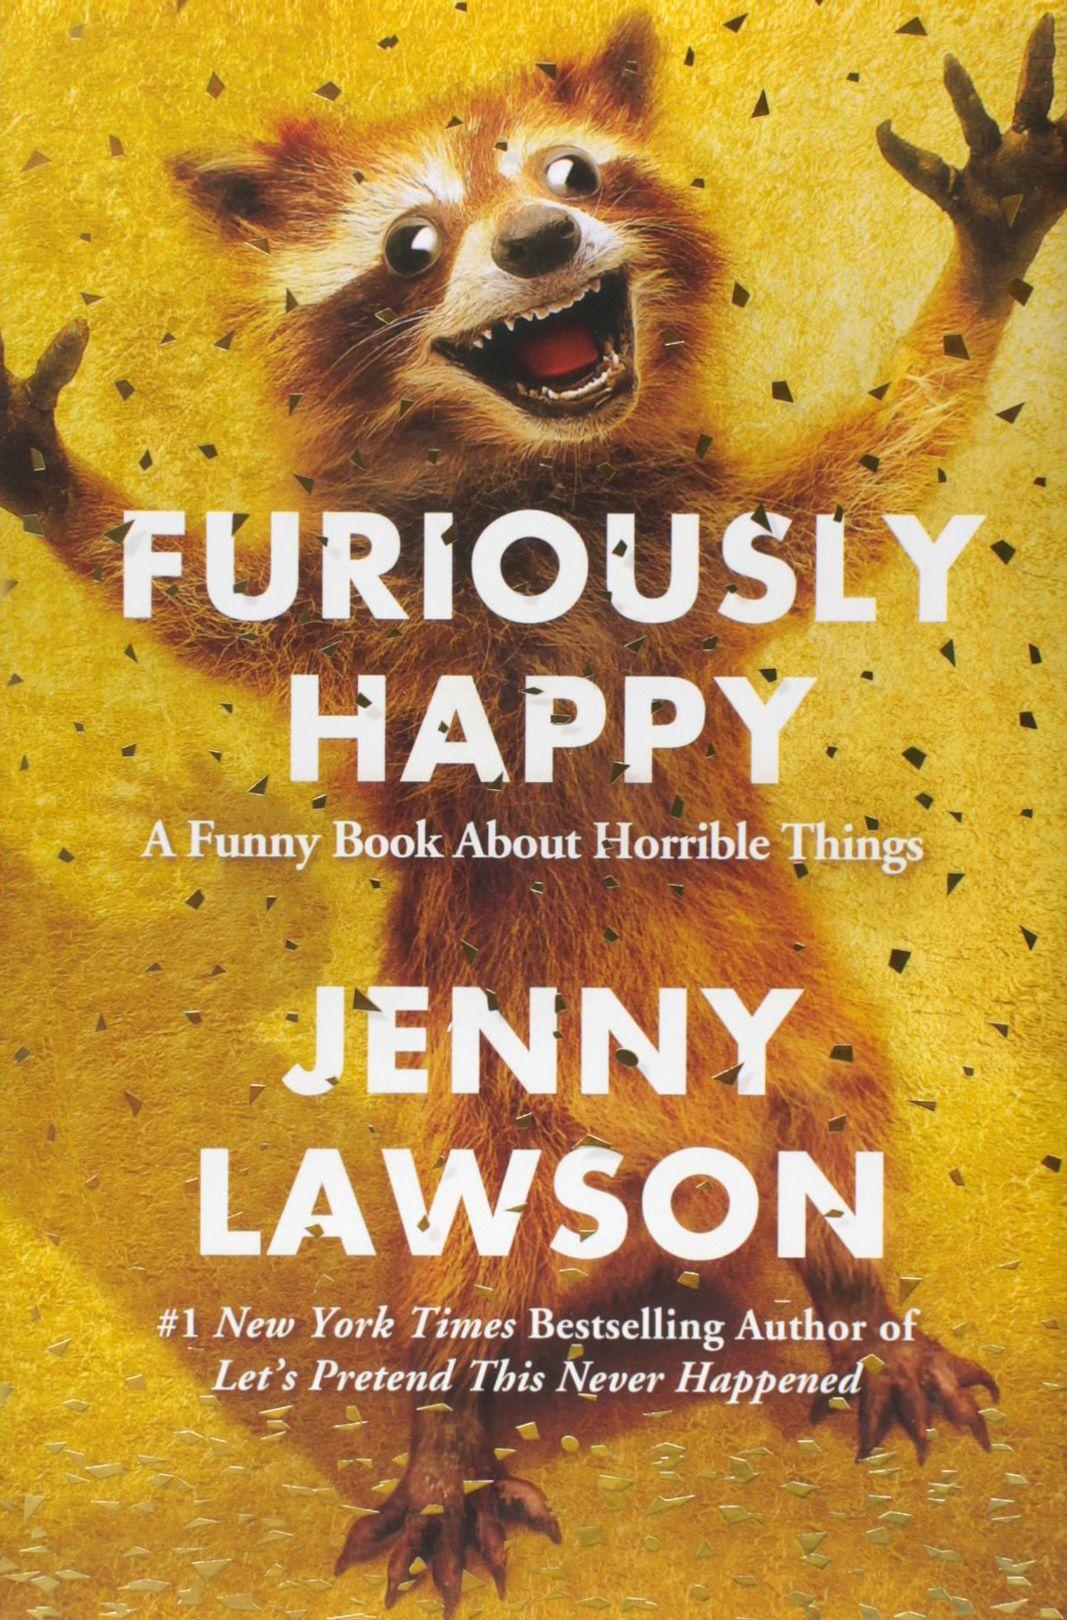 <p><strong><em>Furiously Happy</em></strong></p> <p>By Jenny Lawson</p> <p><em>New York Times</em> bestselling author Jenny Lawson's latest book is a hilarious memoir that chronicles her lifelong struggle with mental illness. Believe it or not, crippling depression and anxiety can be funny. Reading between the lines, it becomes clear that the book is unequivocally about joy and embracing happiness wherever and whenever we find it. That sounds like something we should all be doing a little more often.</p>